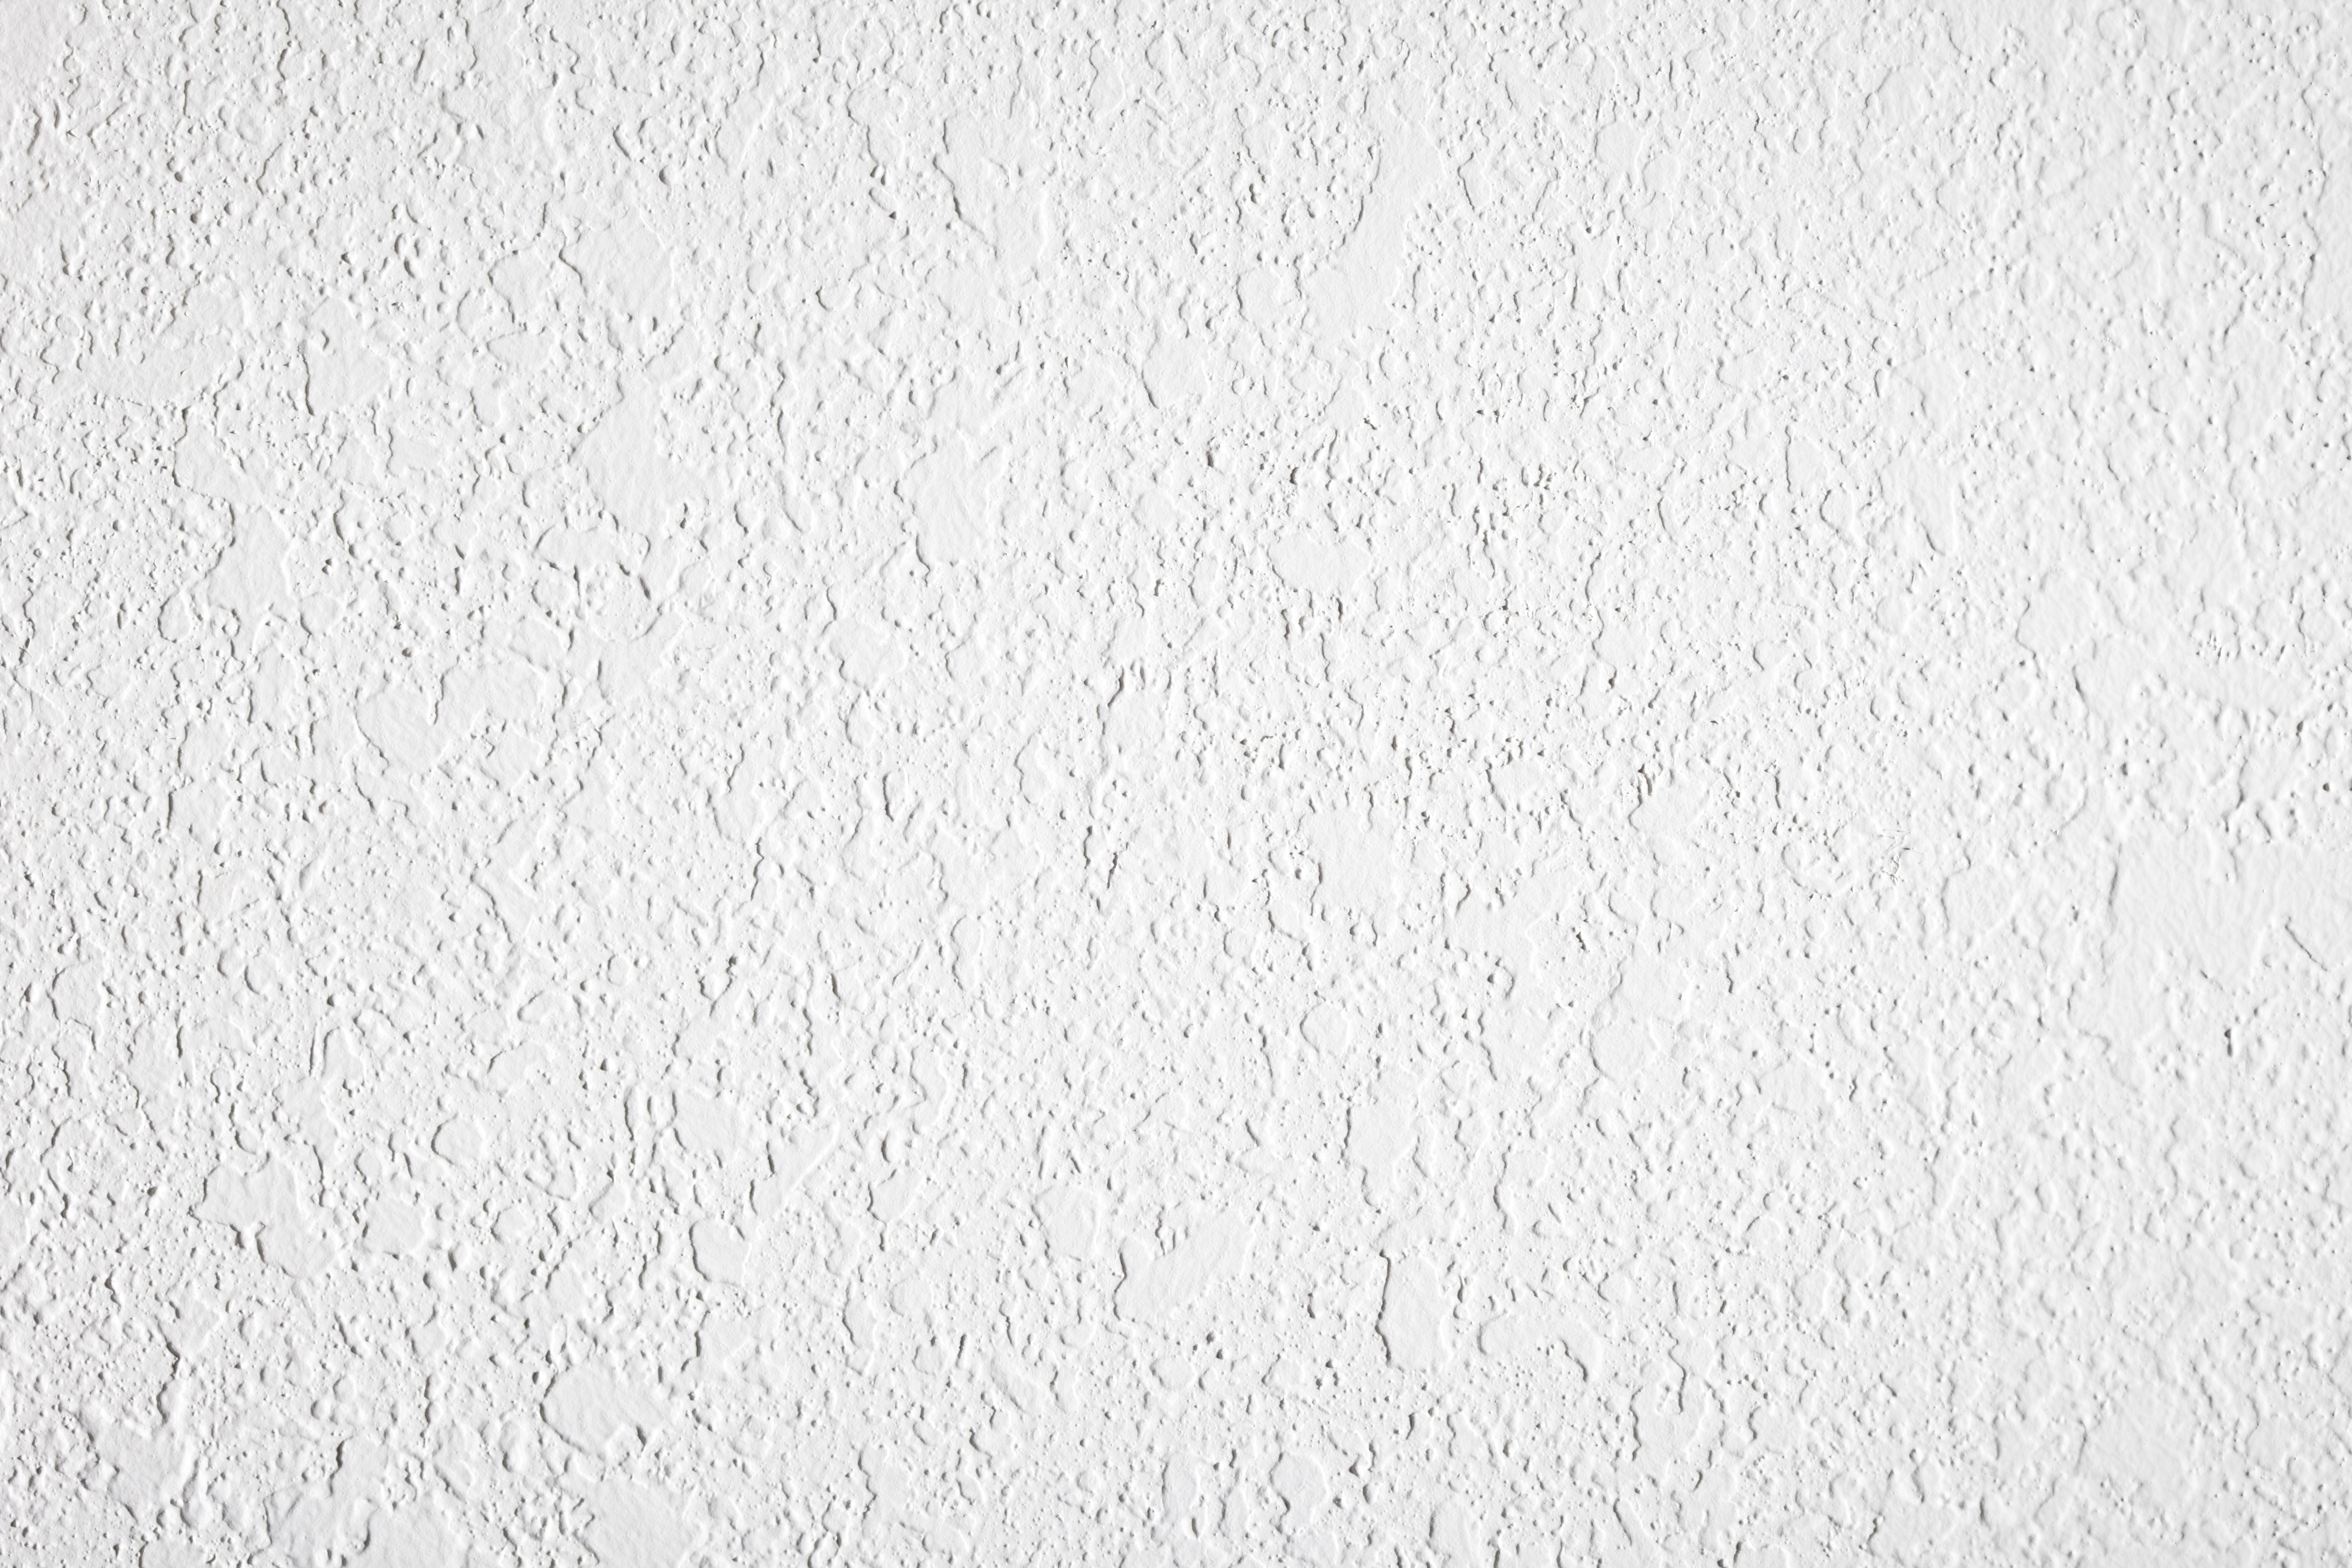 Free photo Painted Wall Texture Rough Space Plaster Free